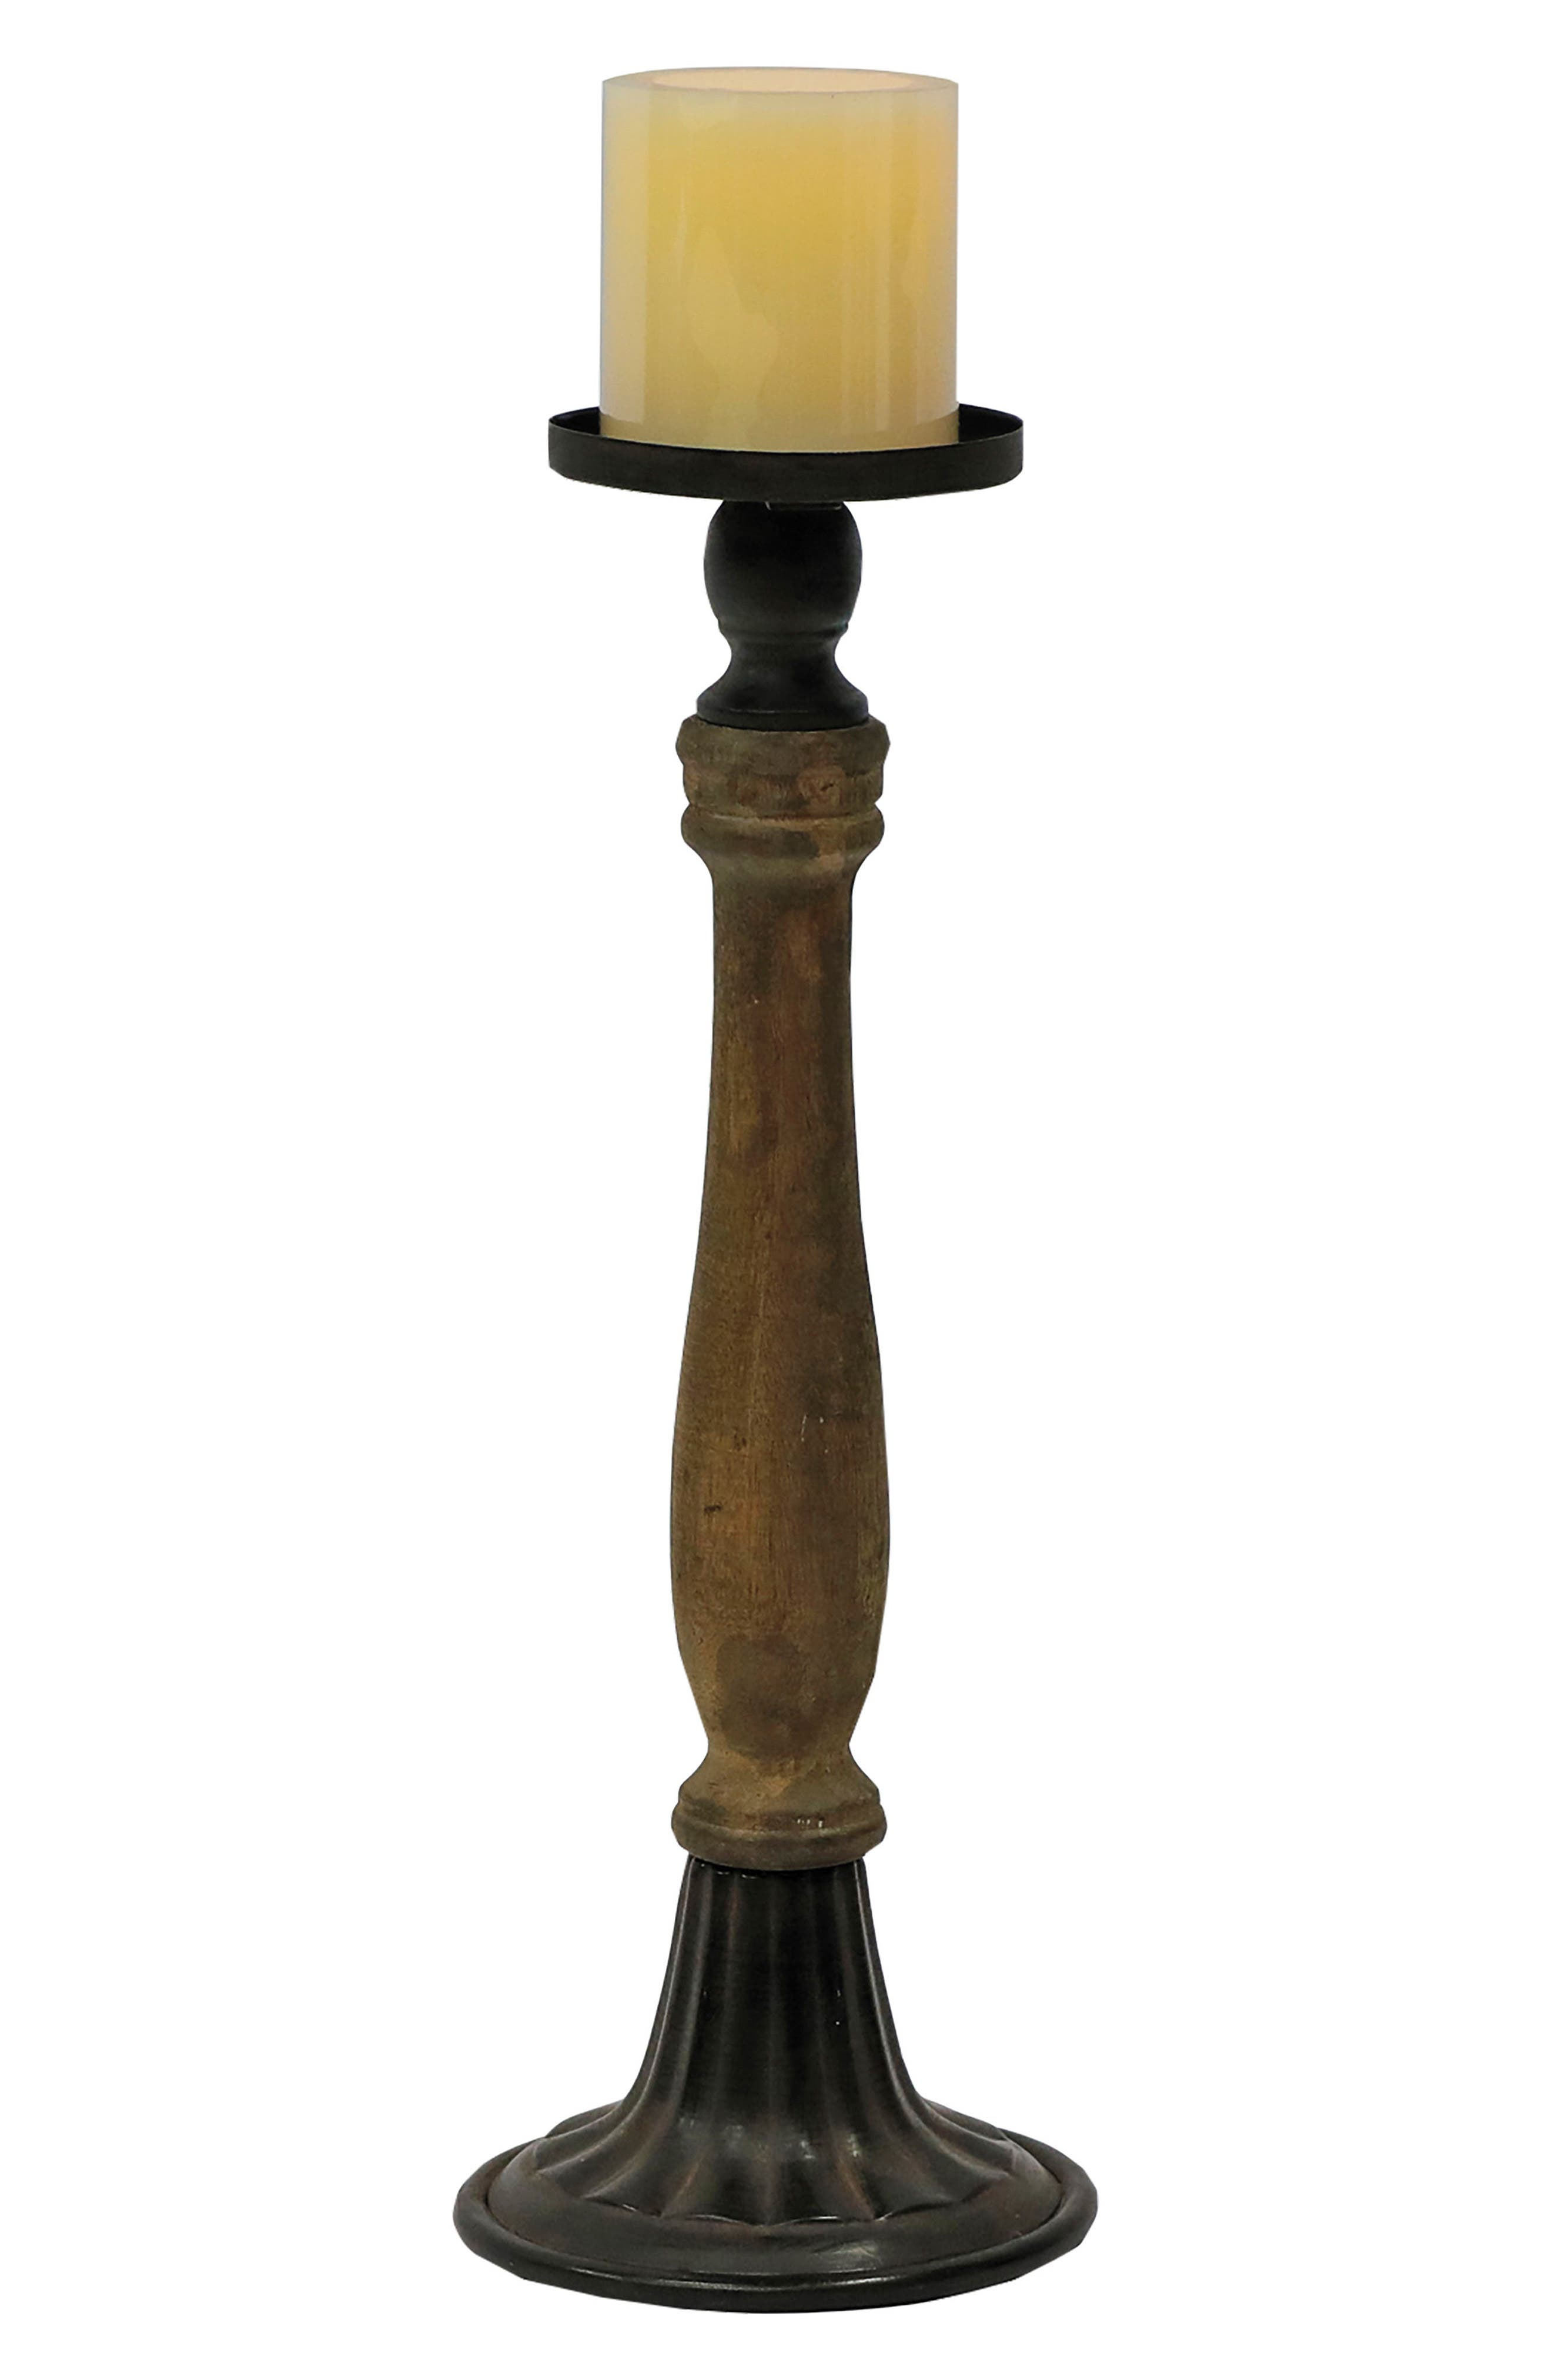 Main Image - Foreside Small Spindle Pillar Candle Holder